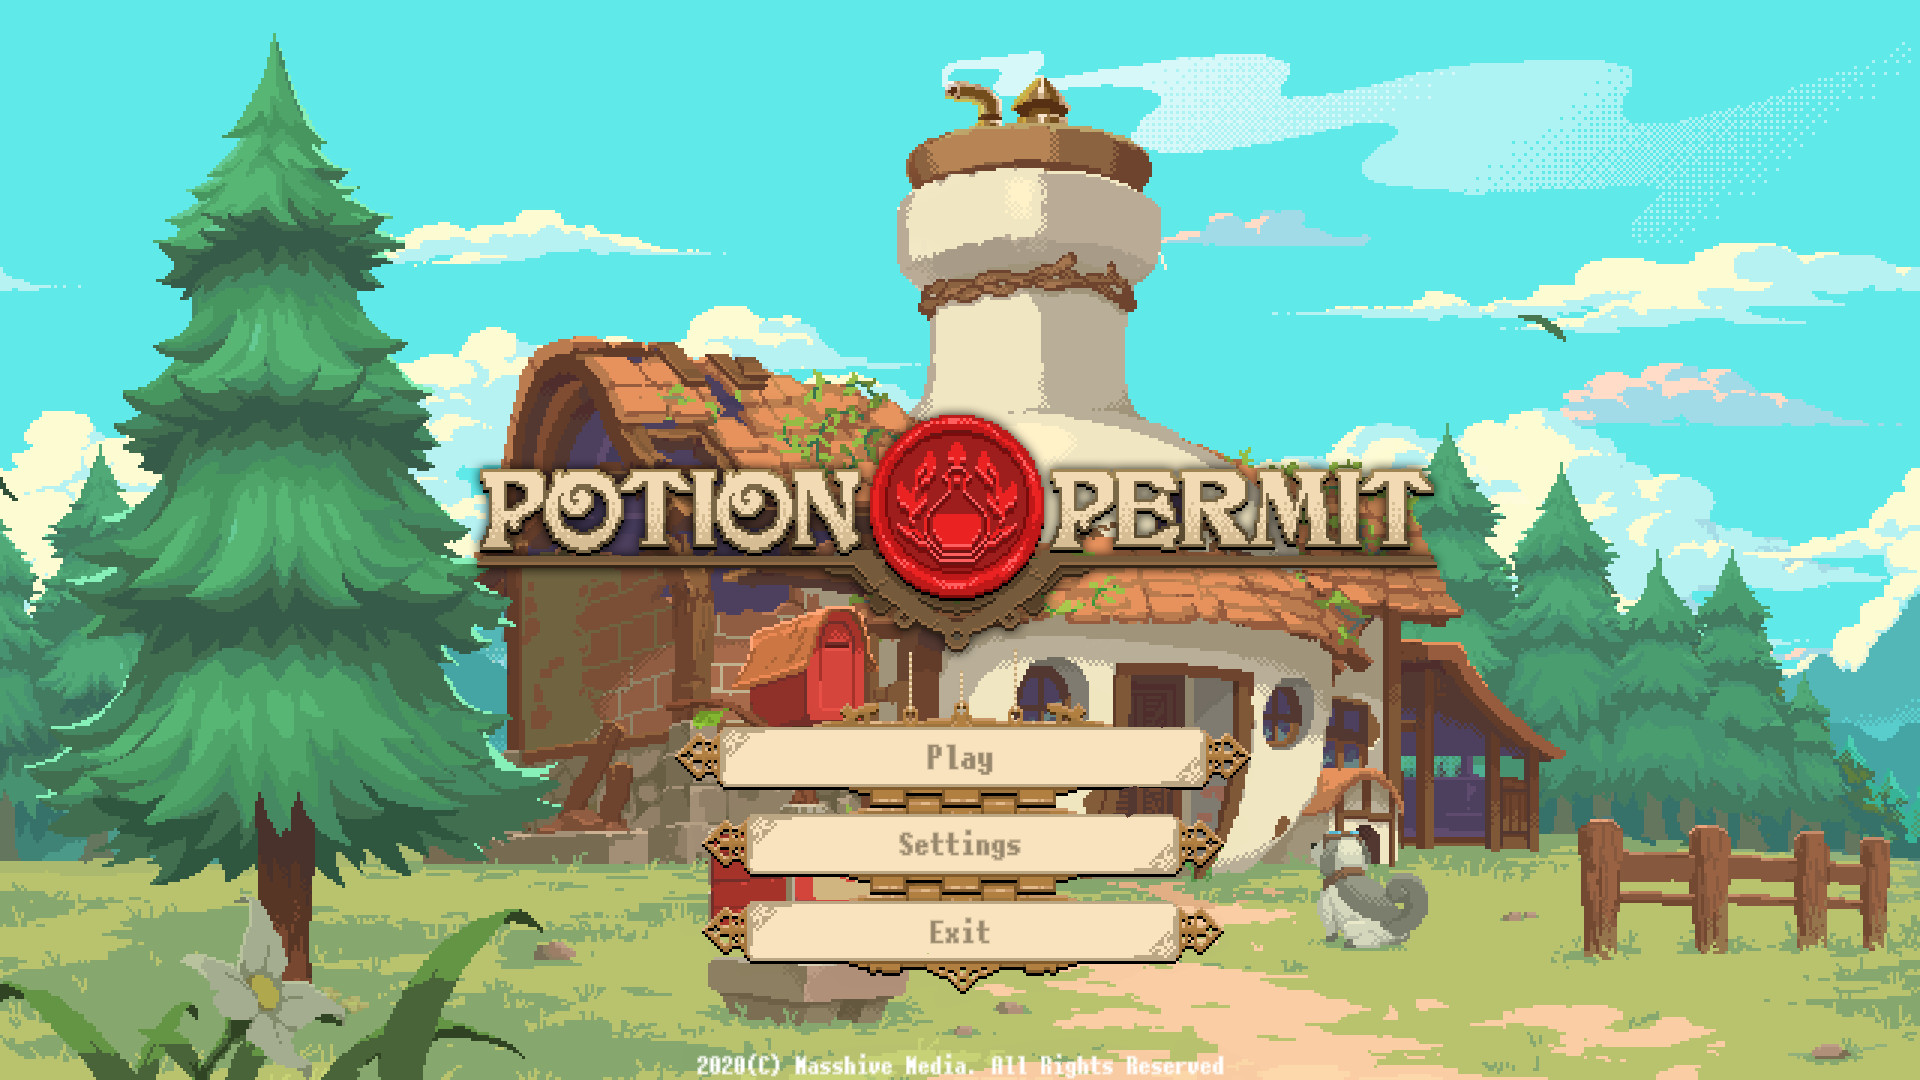 Potion Permit Will Challenge Players To Battle An Ongoing Pandemic As It Launches On Xbox, PlayStation, Switch, and PC Next Year